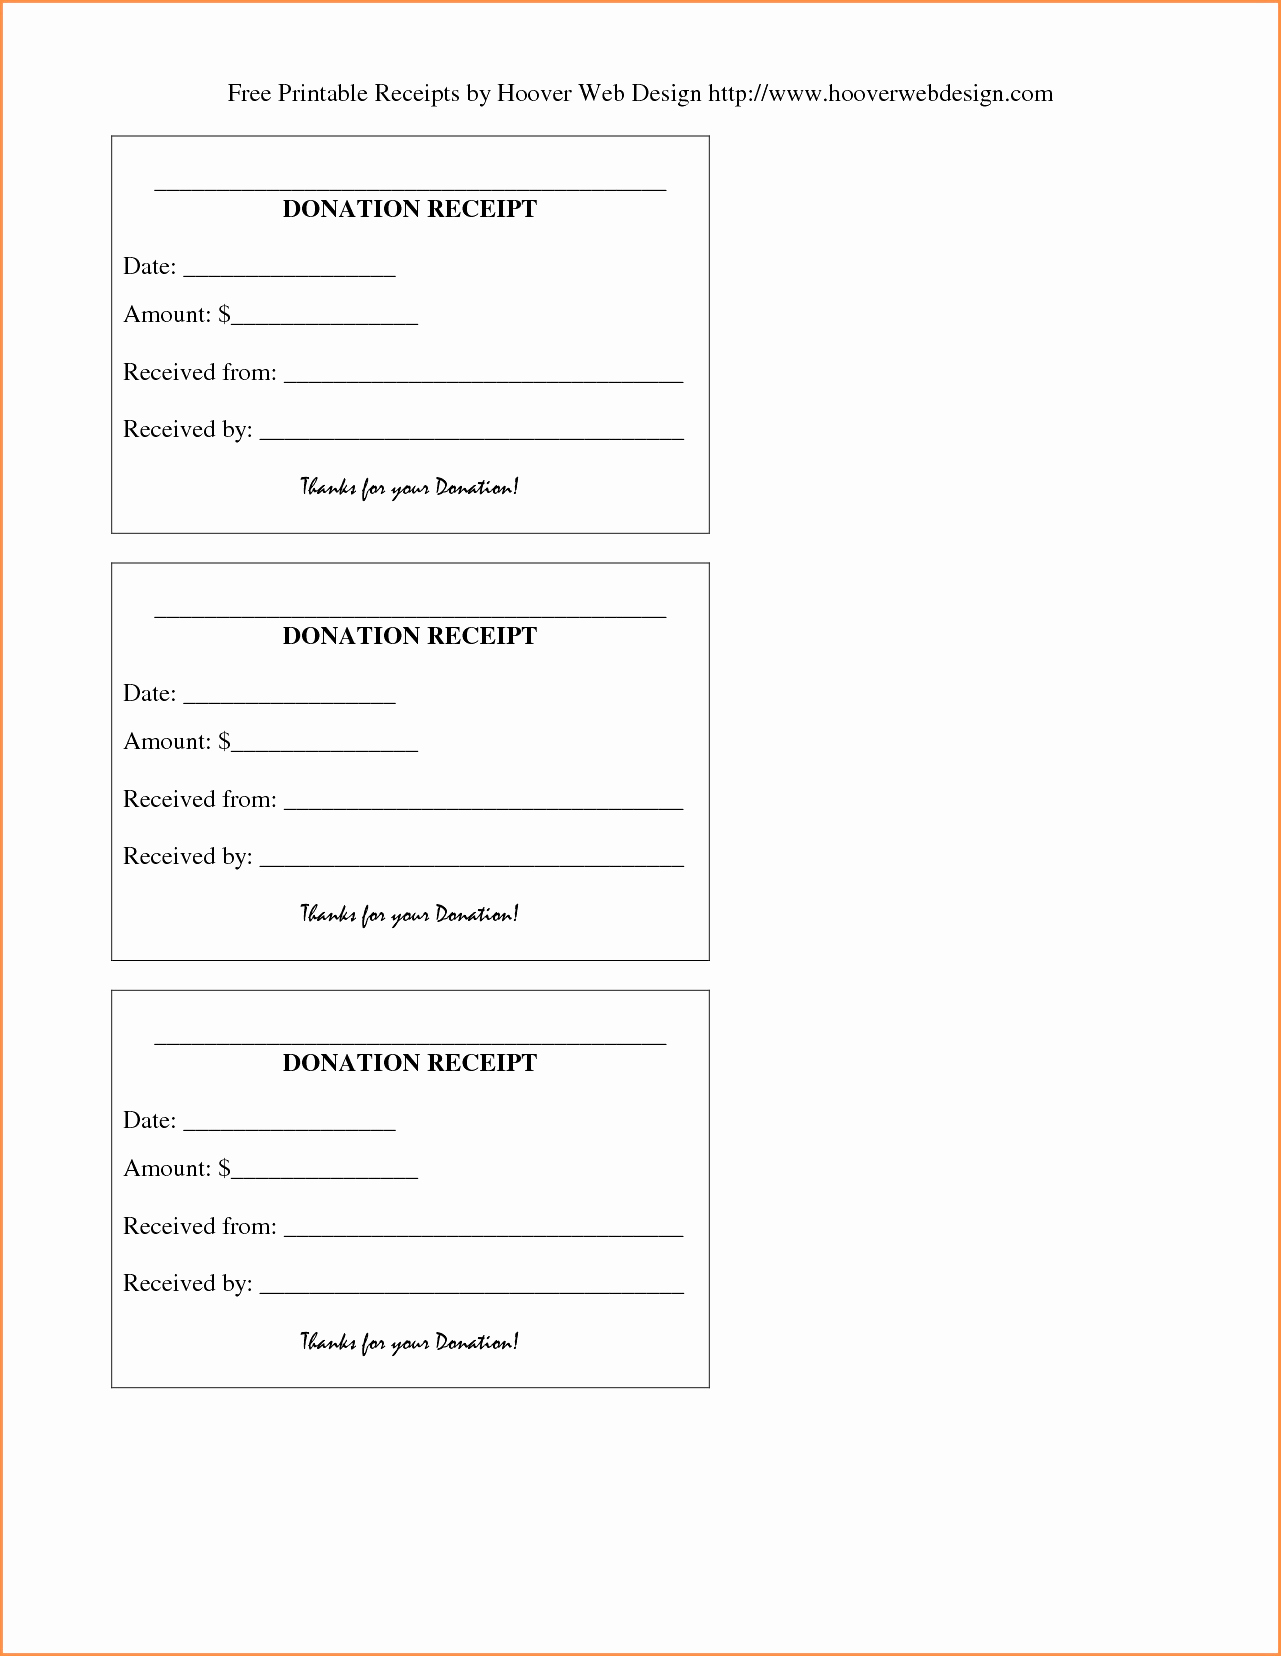 Goodwill Donation Spreadsheet Template Beautiful Goodwill toy Donation Values – Wow Blog